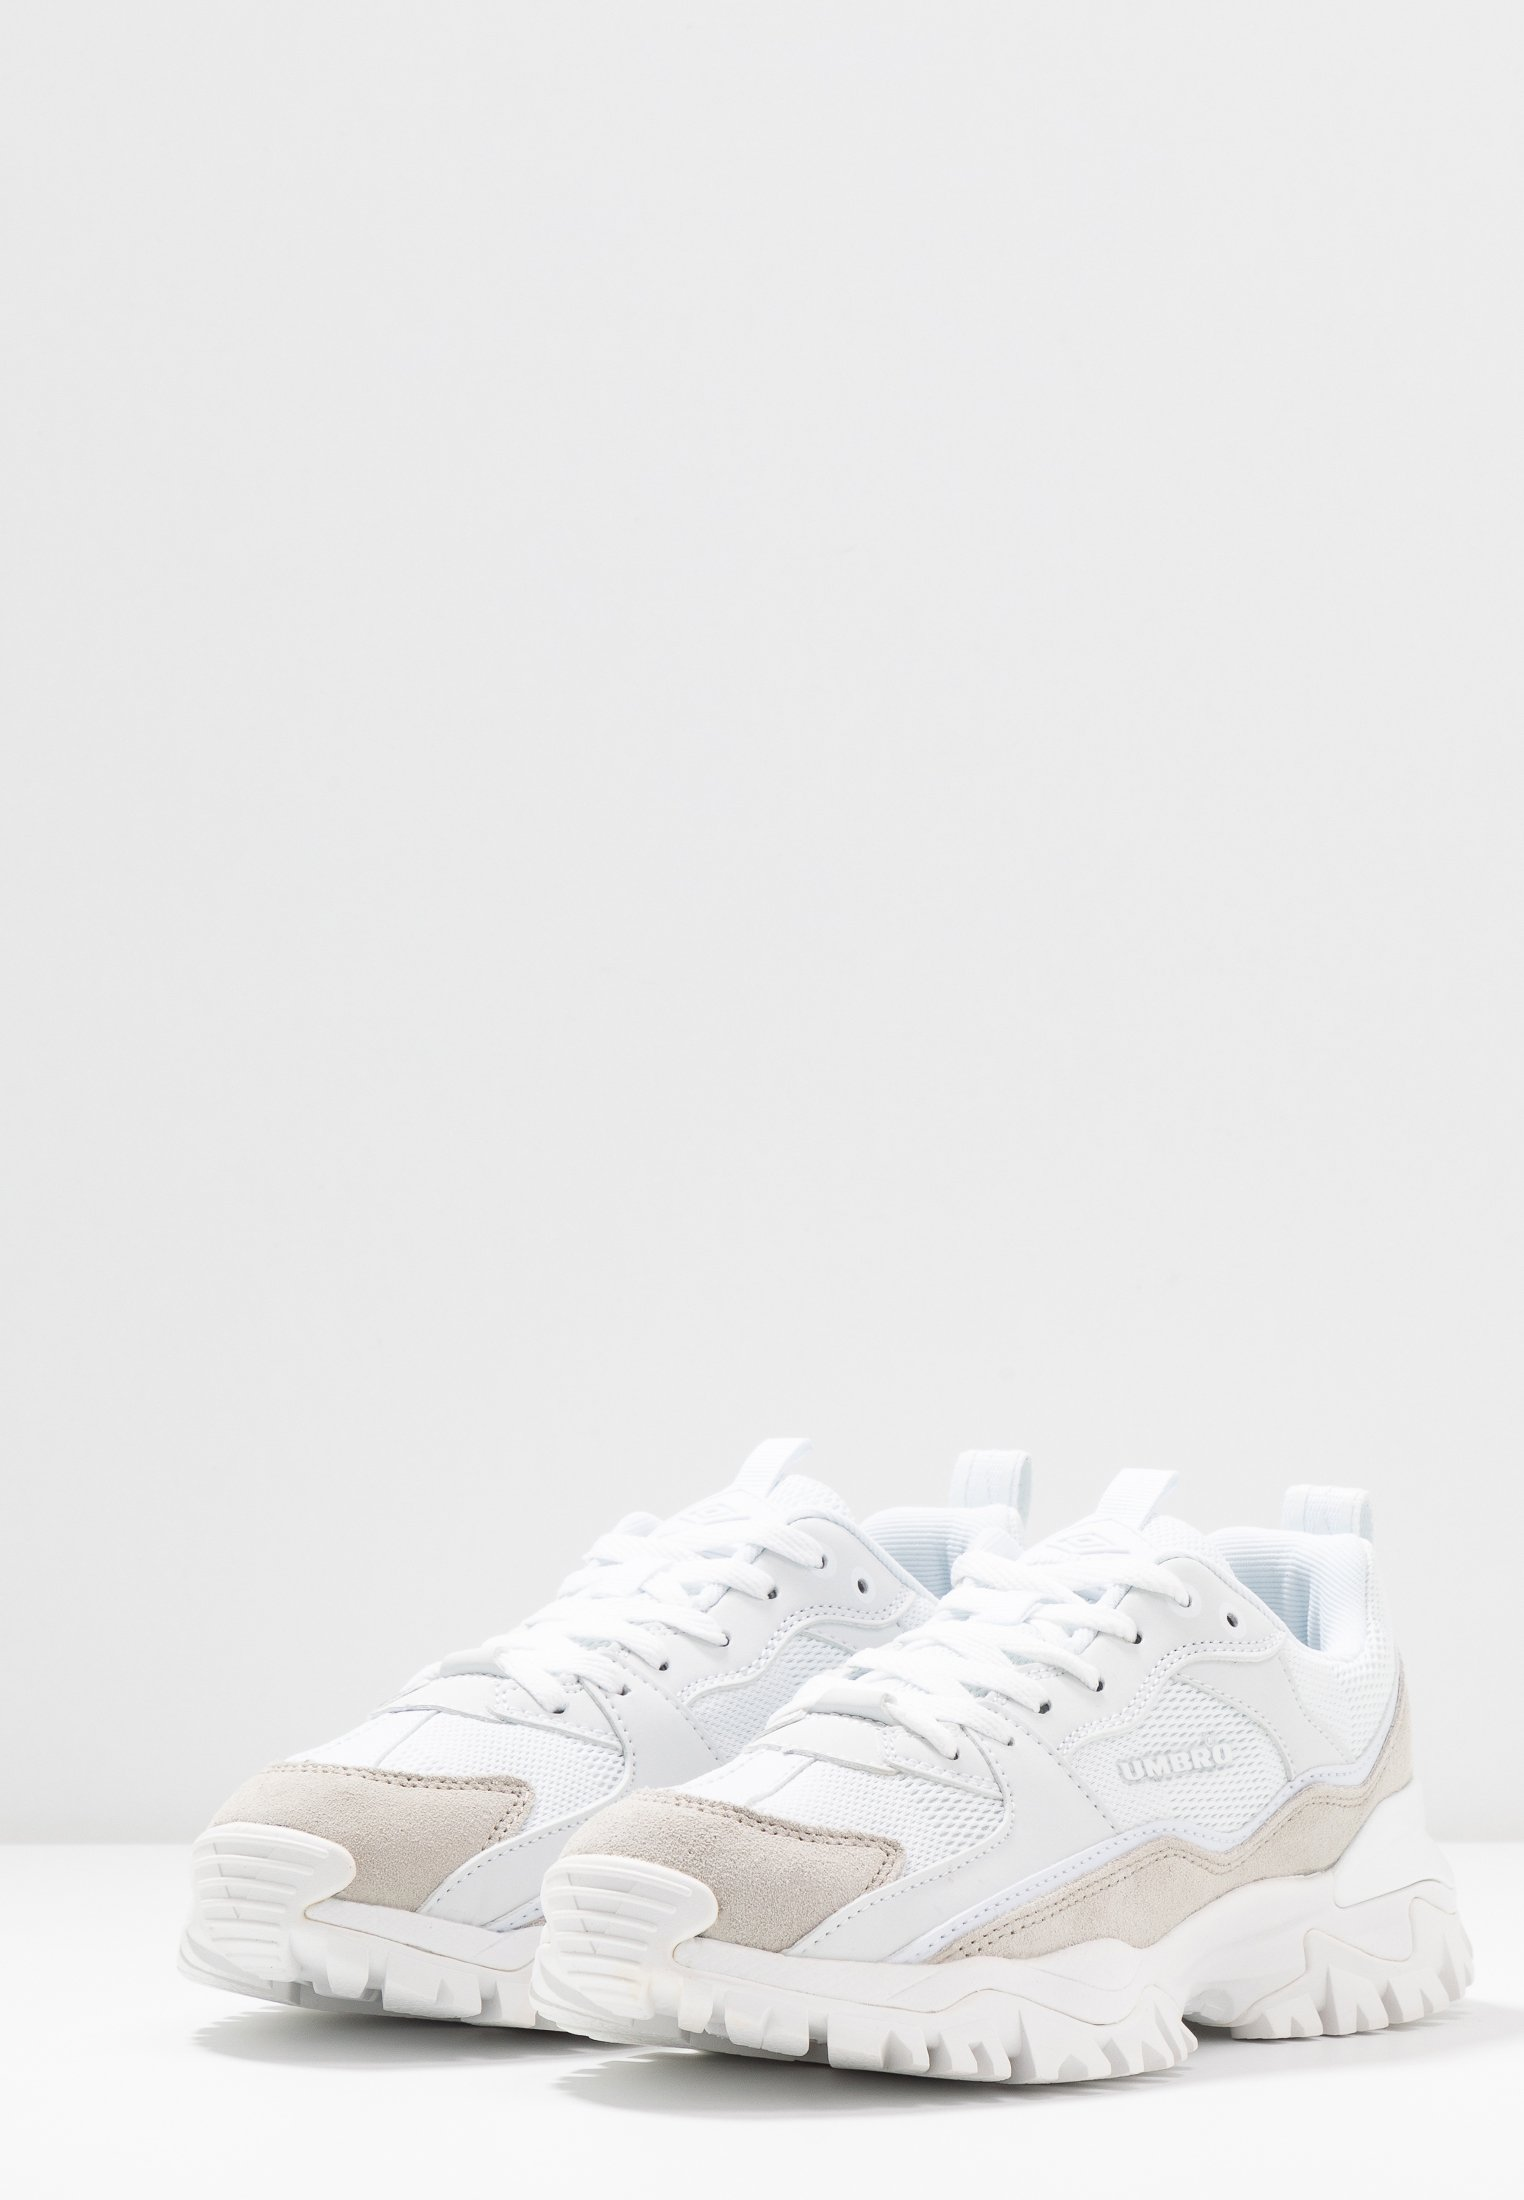 Umbro Basse Projects Projects BumpySneakers Basse White Projects White Umbro BumpySneakers Umbro fbyY67gv